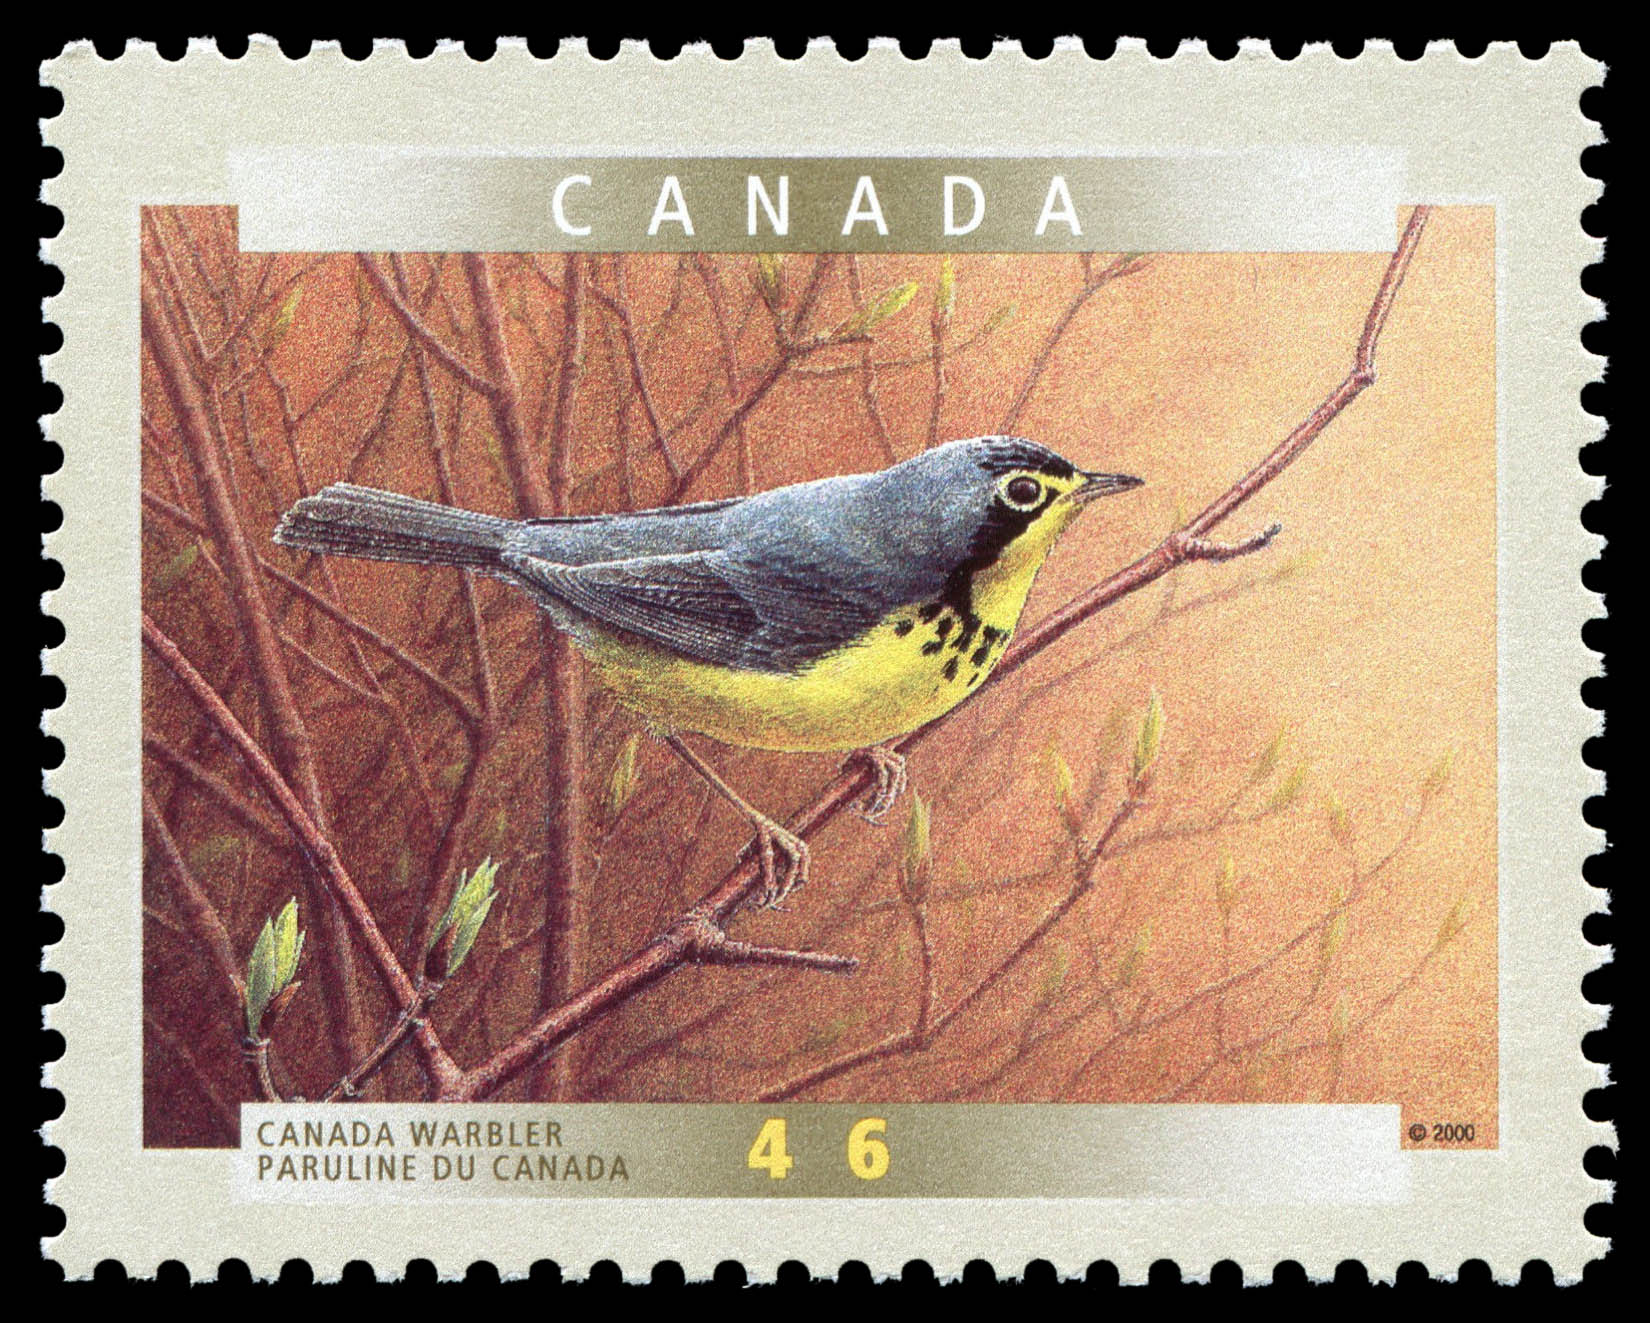 Canada Warbler Canada Postage Stamp | Birds of Canada